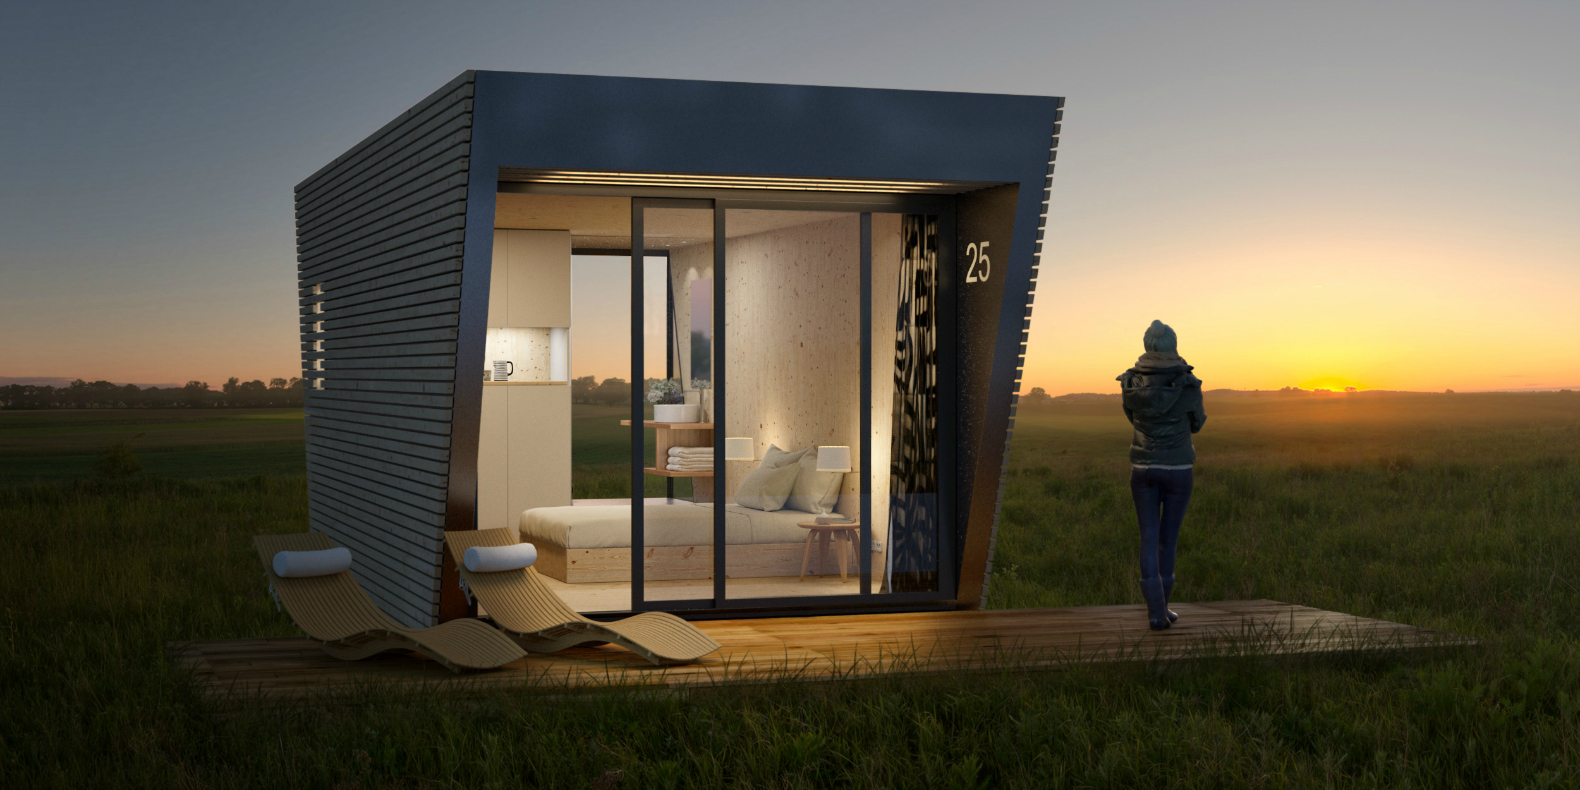 Drop Box Micro Hotel Lets You Roam The World In Nomadic